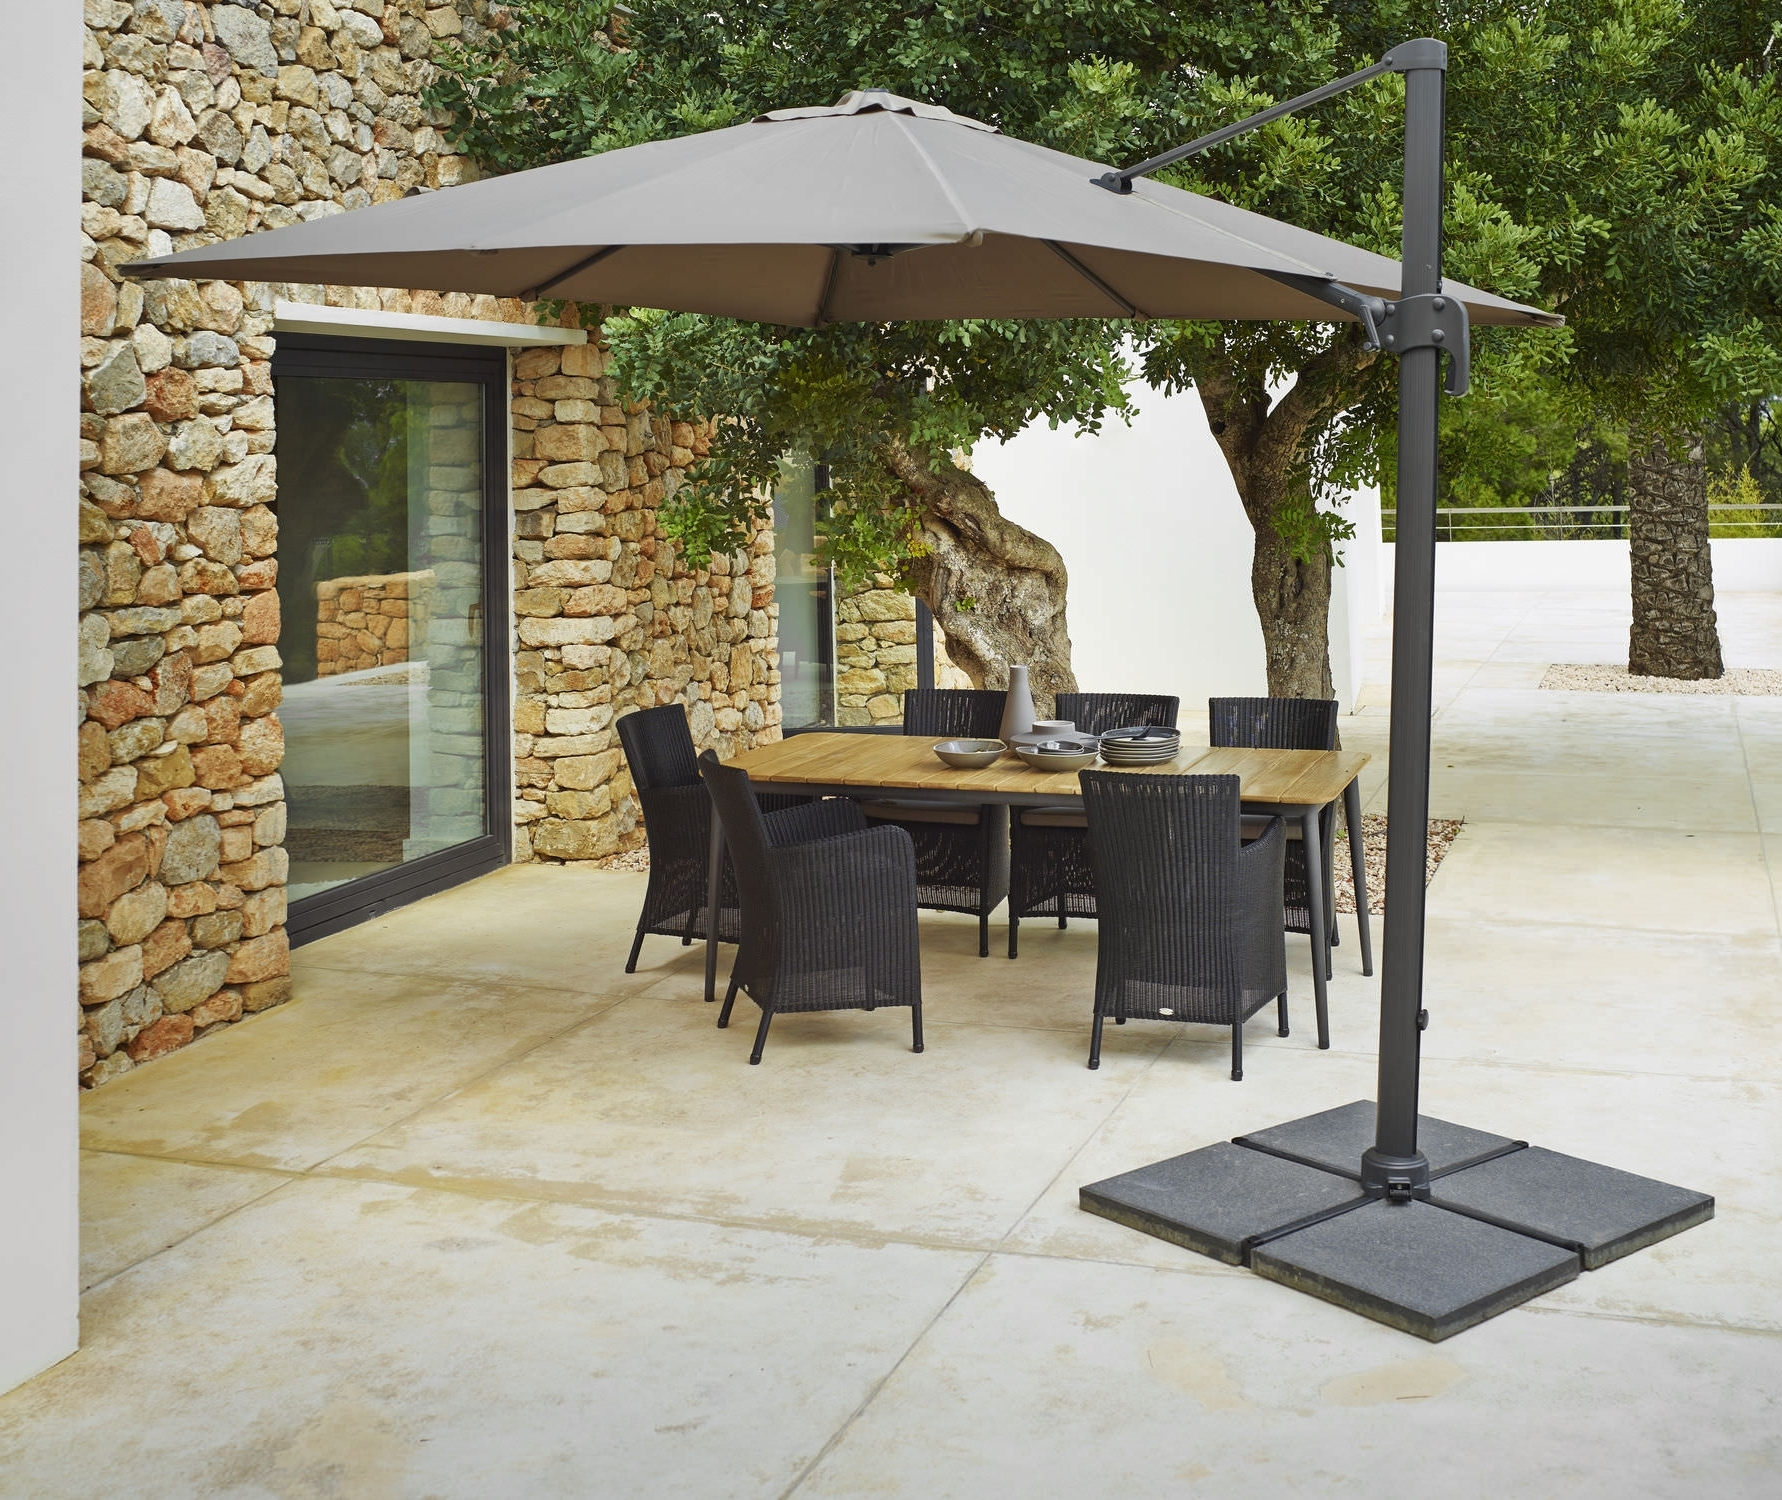 38 Offset Patio Umbrella Clearance, Offset Patio Umbrella Clearance Intended For 2019 Hanging Offset Patio Umbrellas (View 2 of 20)